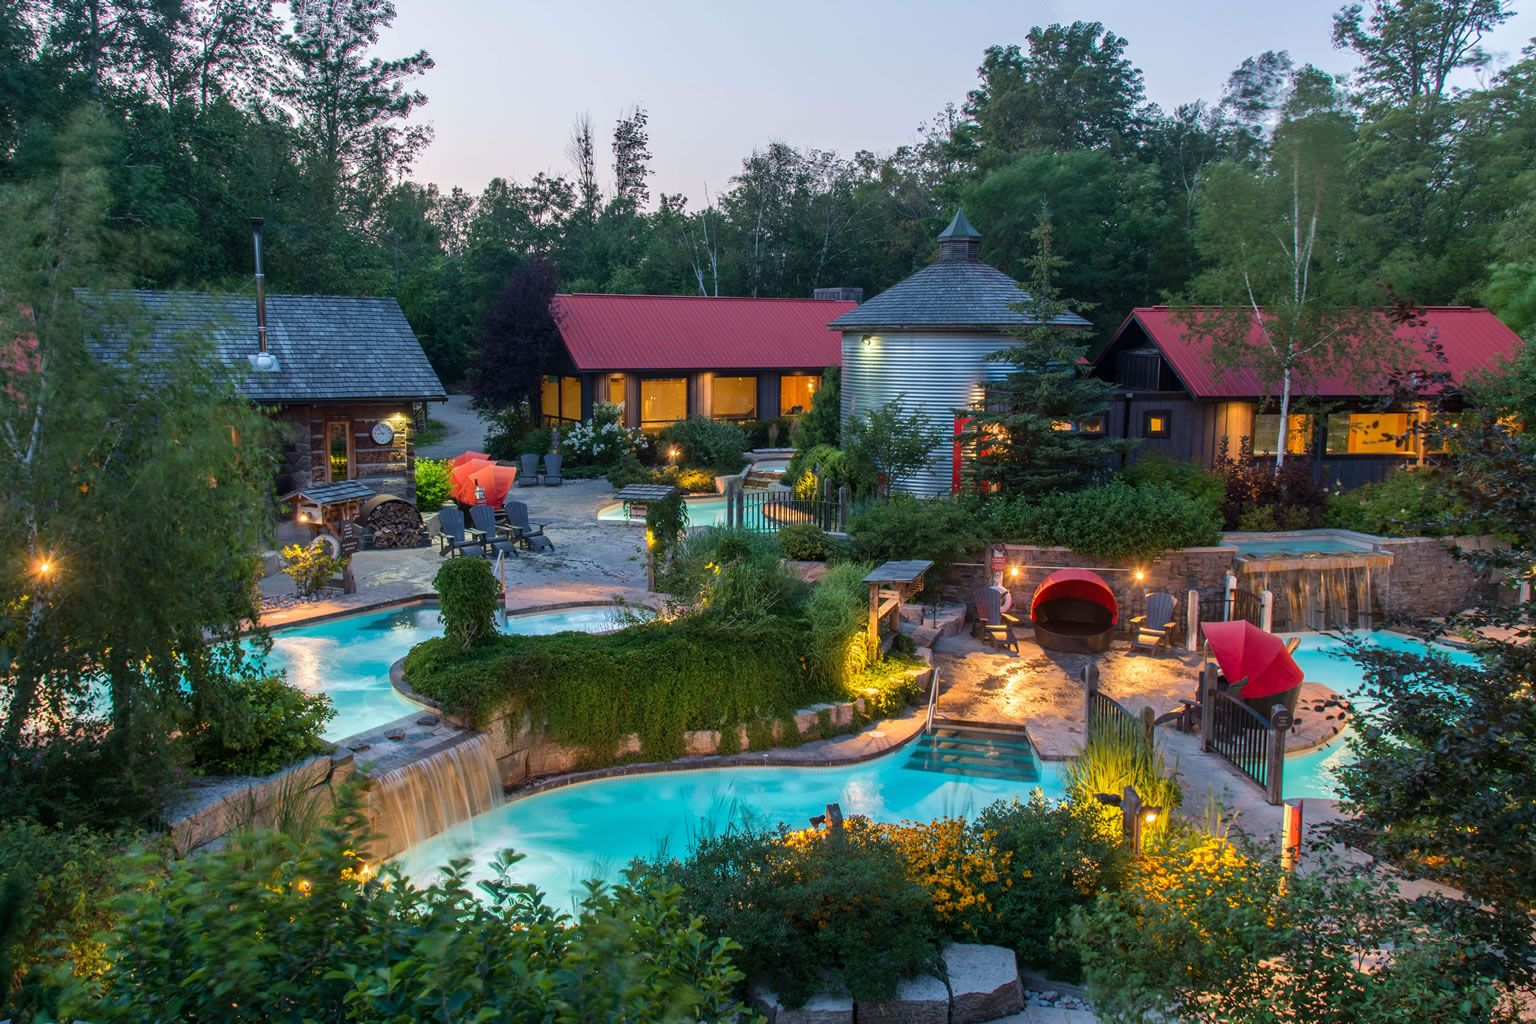 Spa Days At The Bay Relax At These Ontario Spas In 2020 Outdoor Spa Blue Mountain Outdoor Baths